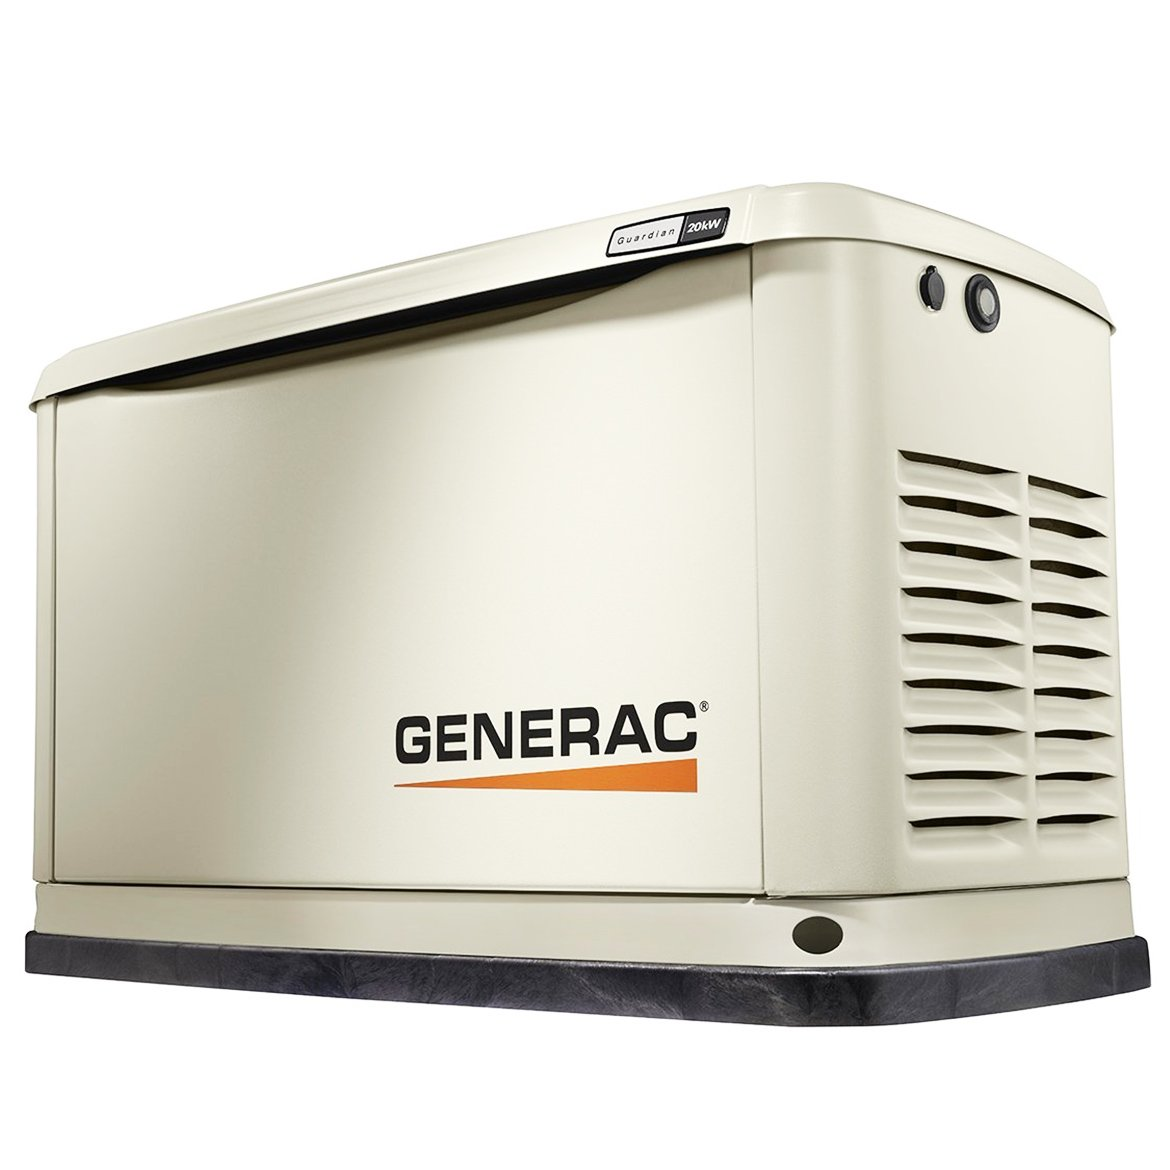 Generac 7040 Synergy 20kW/18kW Variable Speed Air